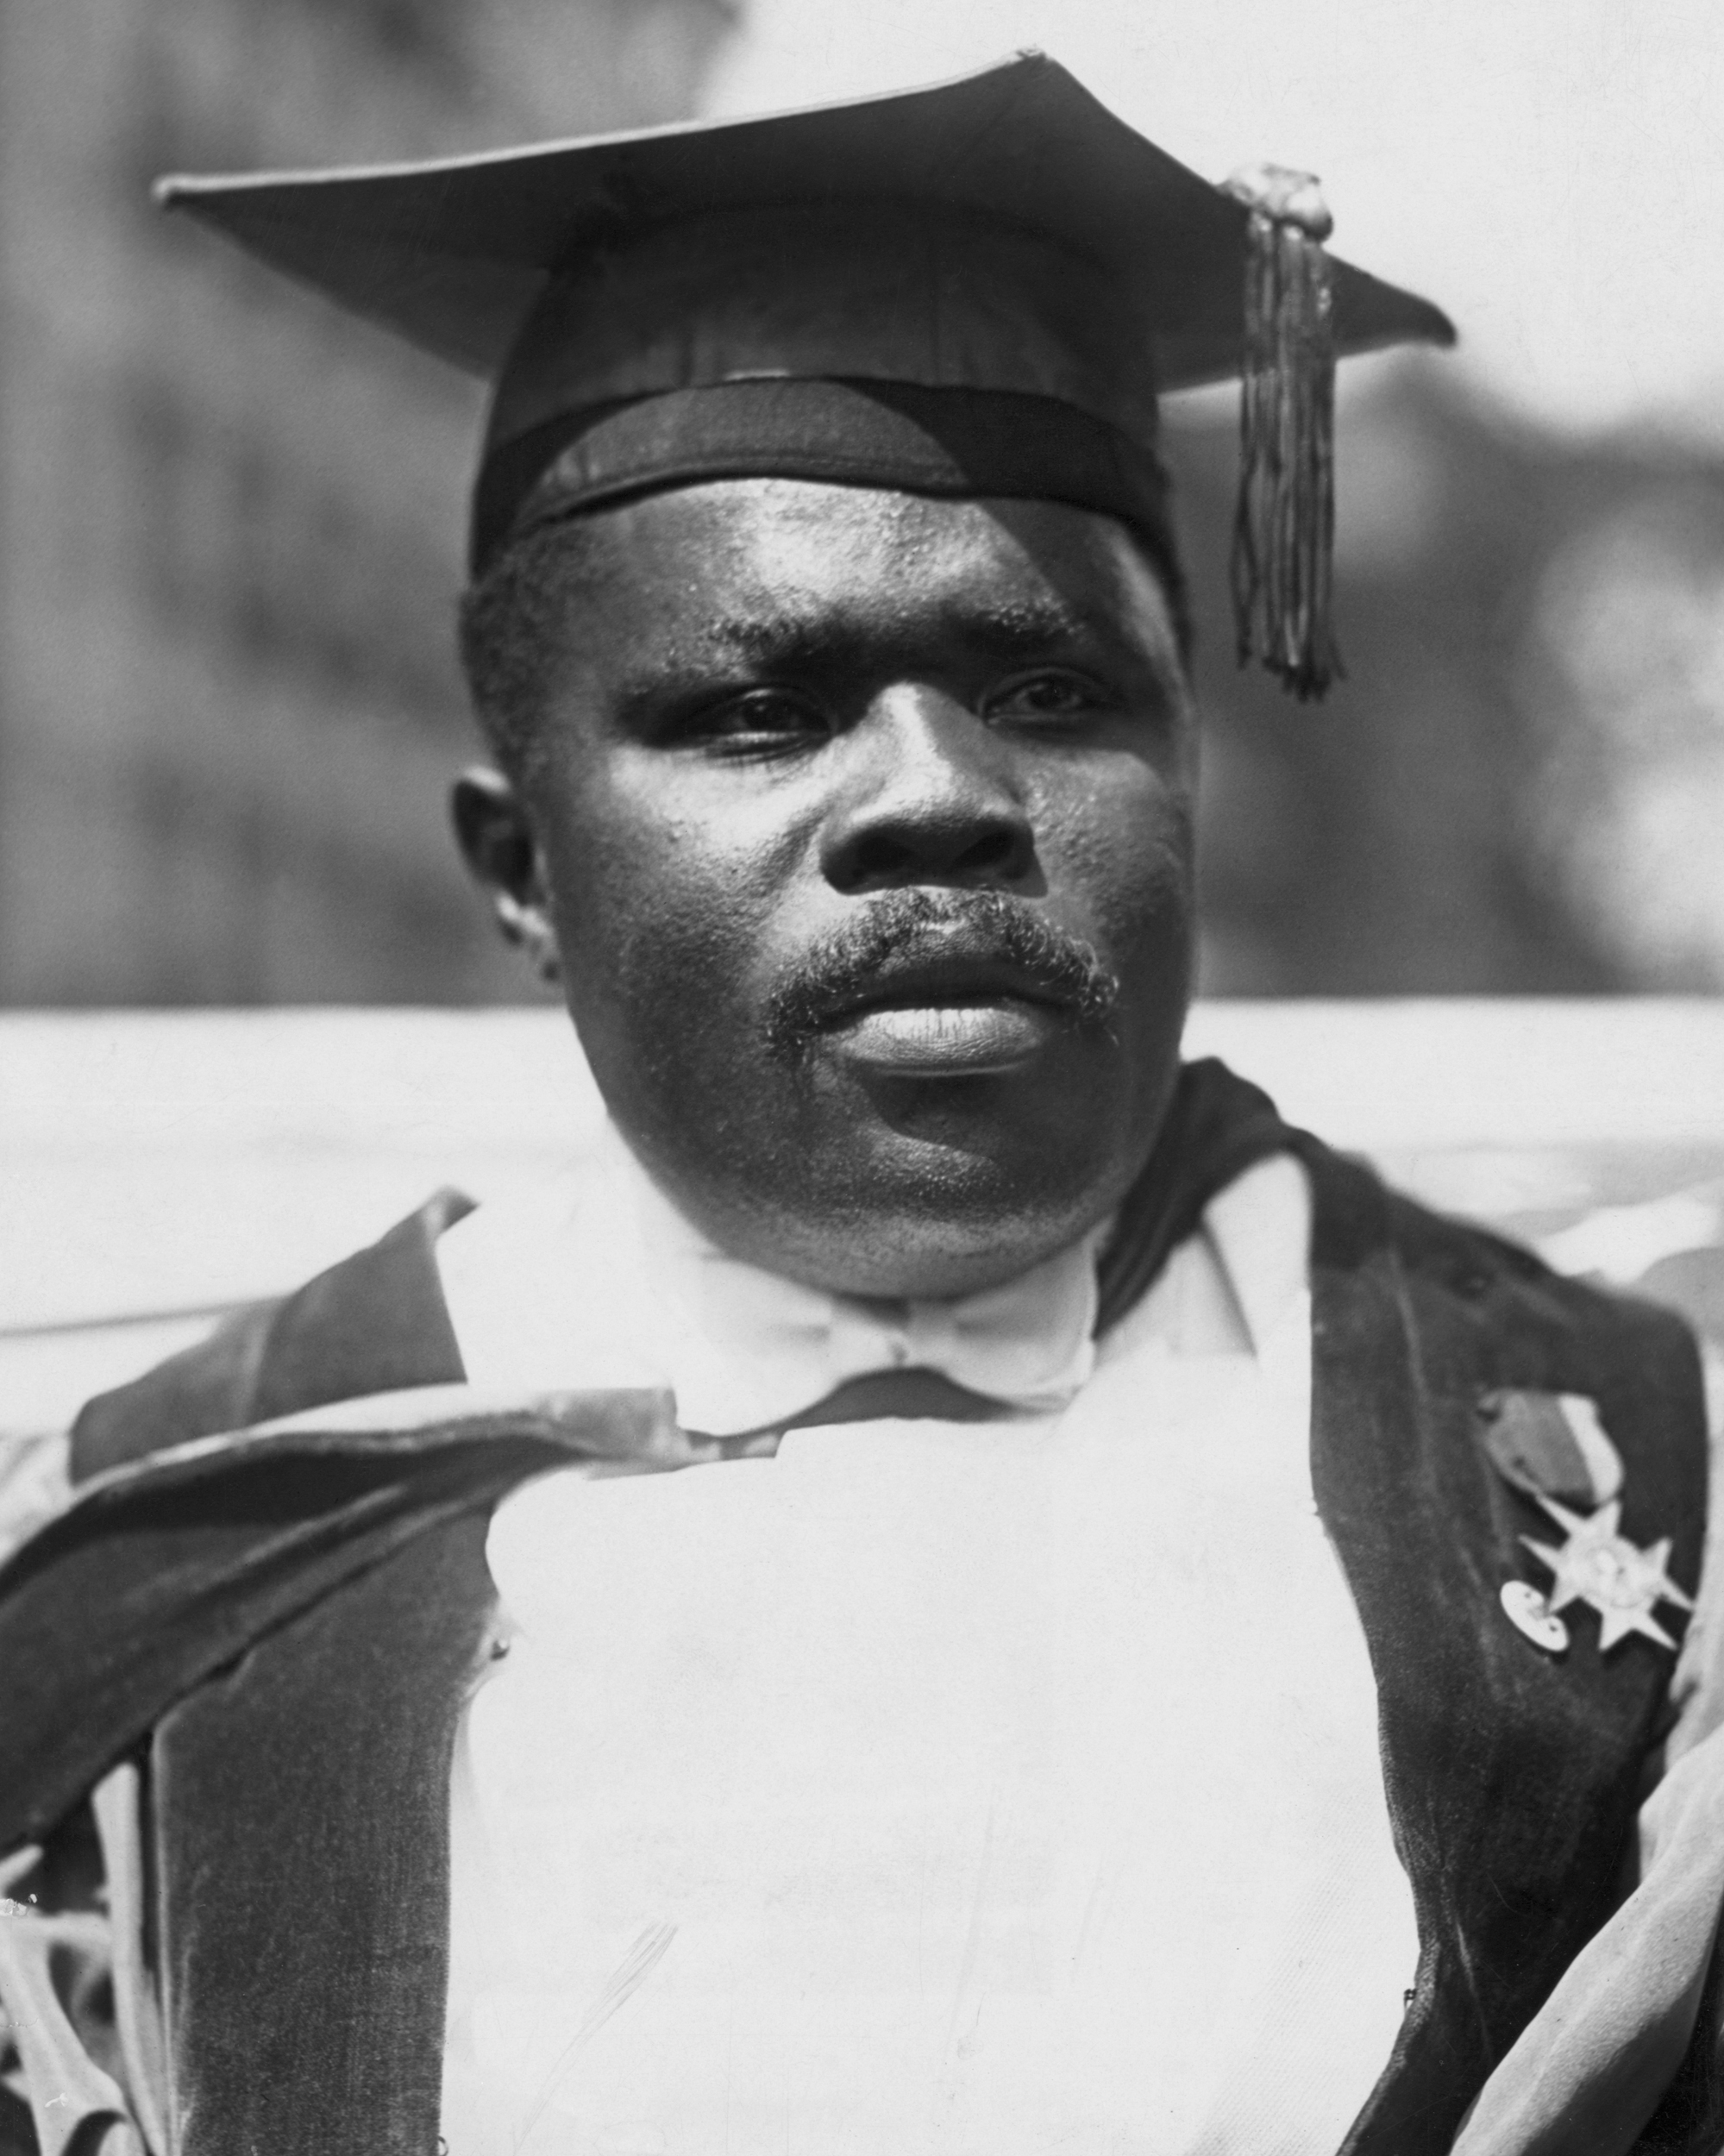 Civil rights leader Marcus Garvey, President of the Universal Negro Improvement Association.